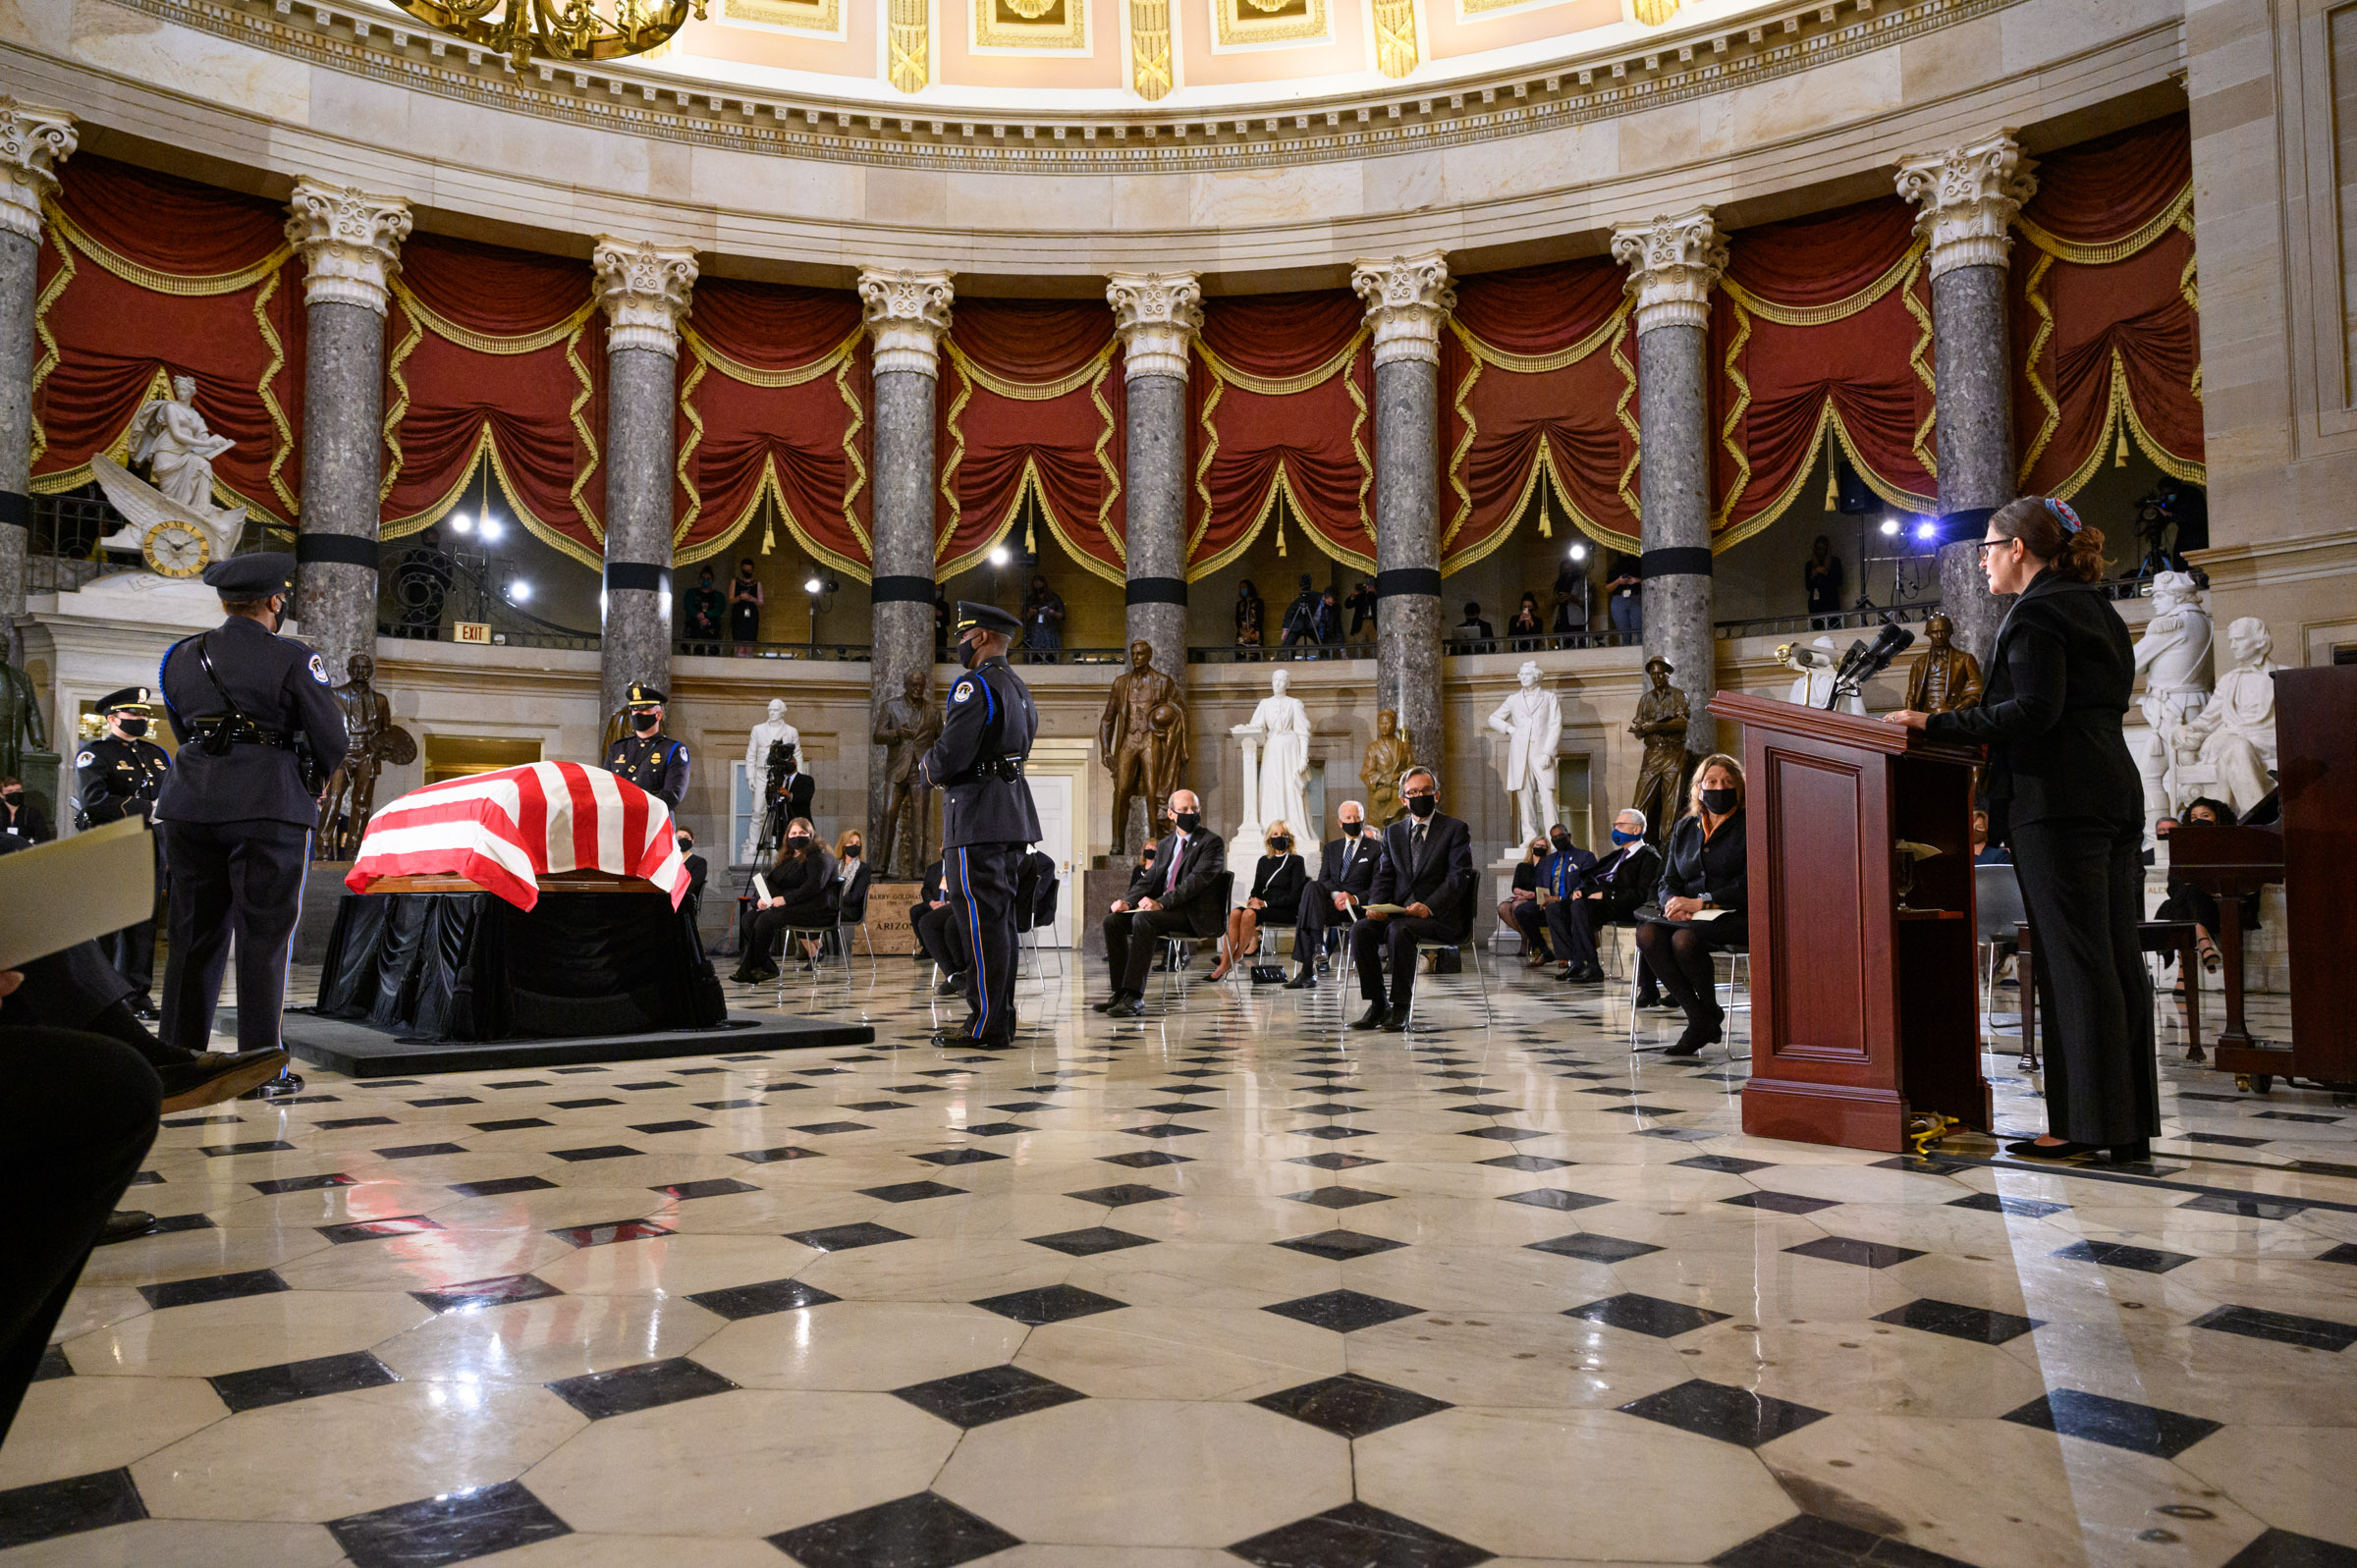 Family and invited guests joined in the U.S. Capitol to honor Justice Ginsburg. Photo by Ike Hayman.